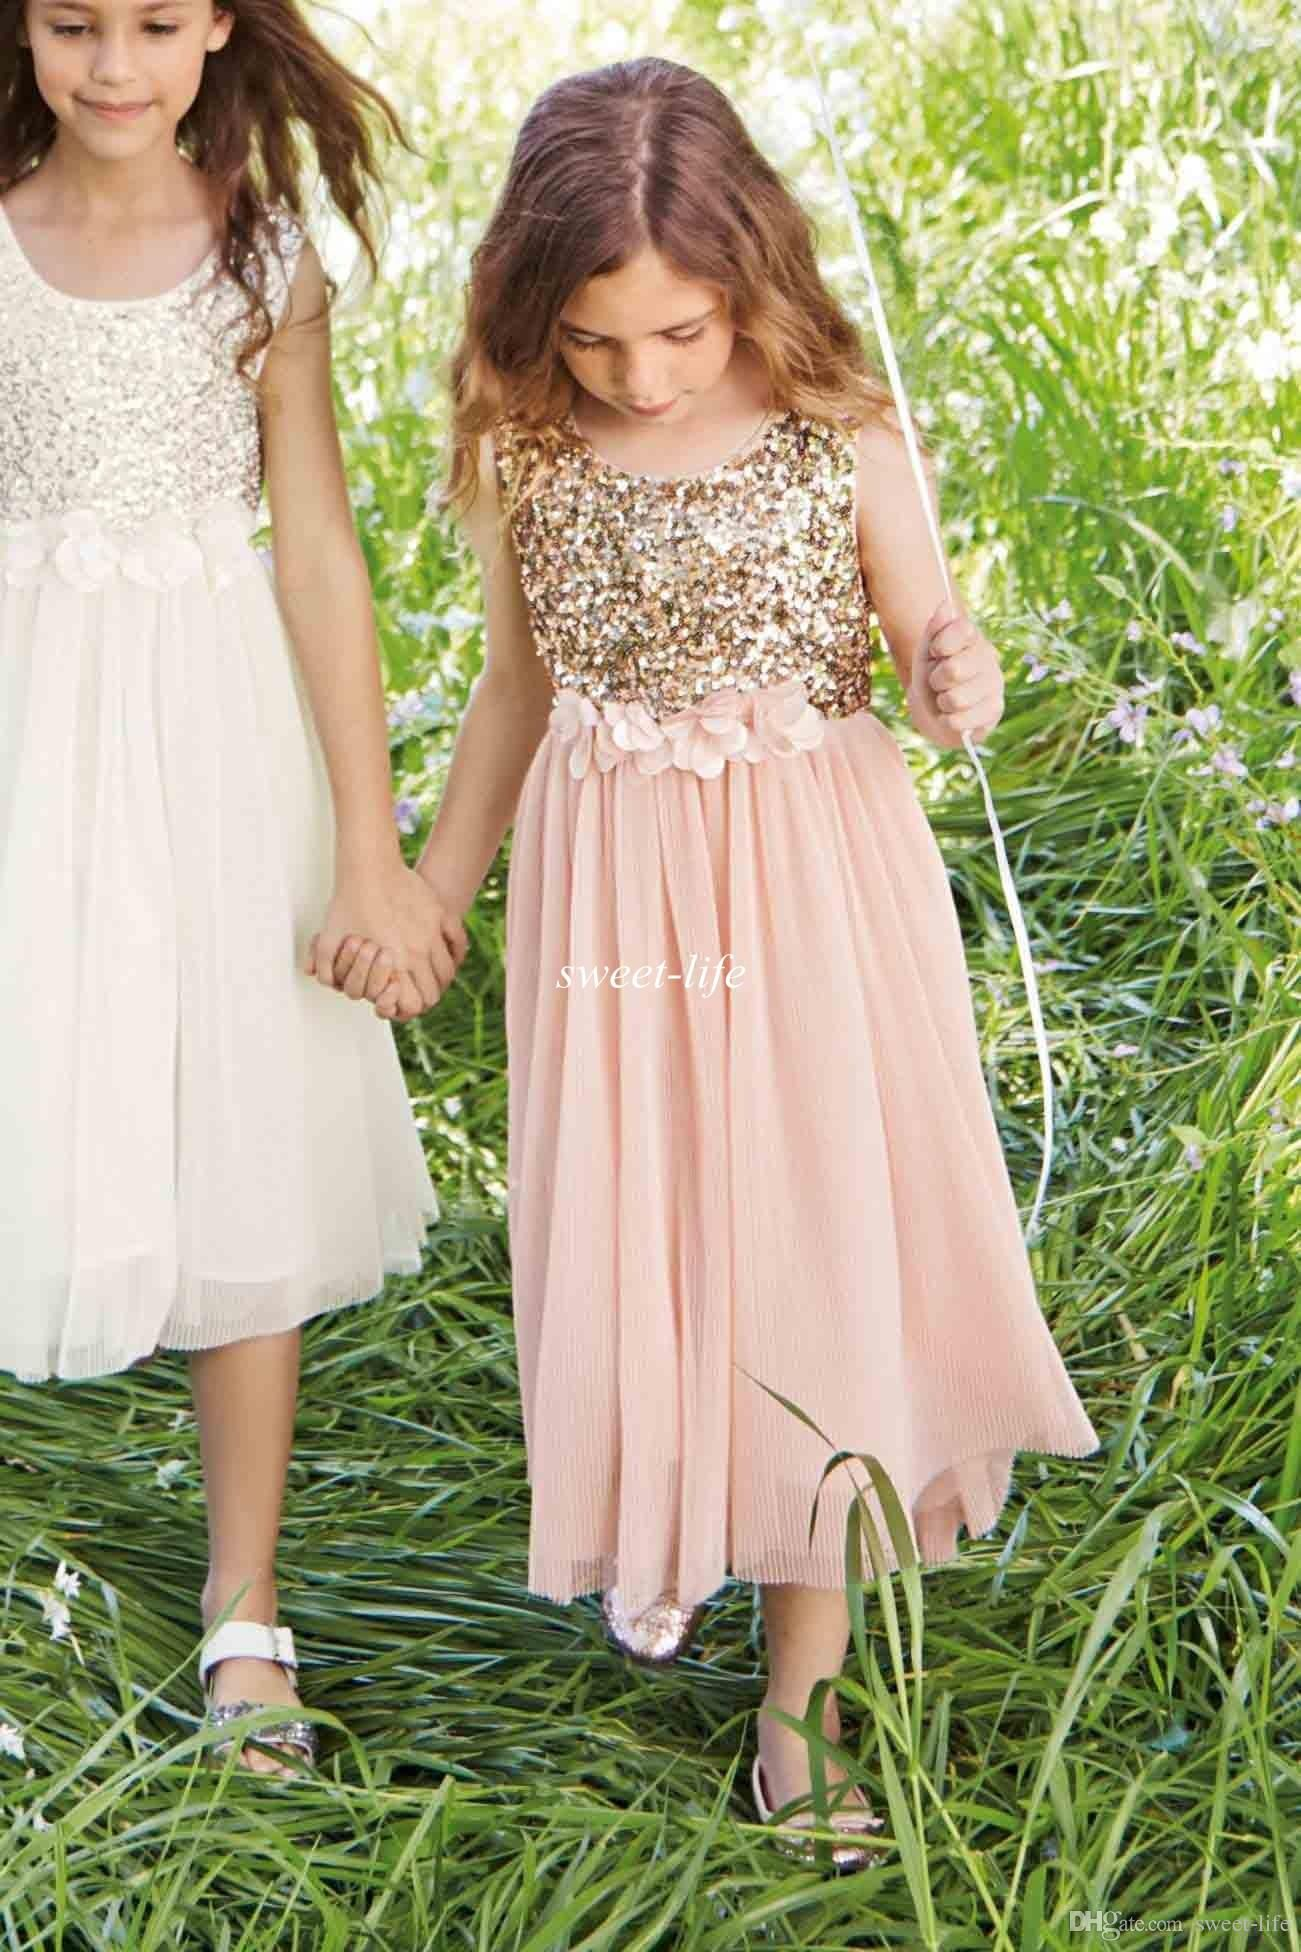 db867edd free shipping, $67.66/piece:buy wholesale 2015 blush flower girls dresses  gold sequins hand made flower sash tea length tulle jewel a line kids  formal dress ...